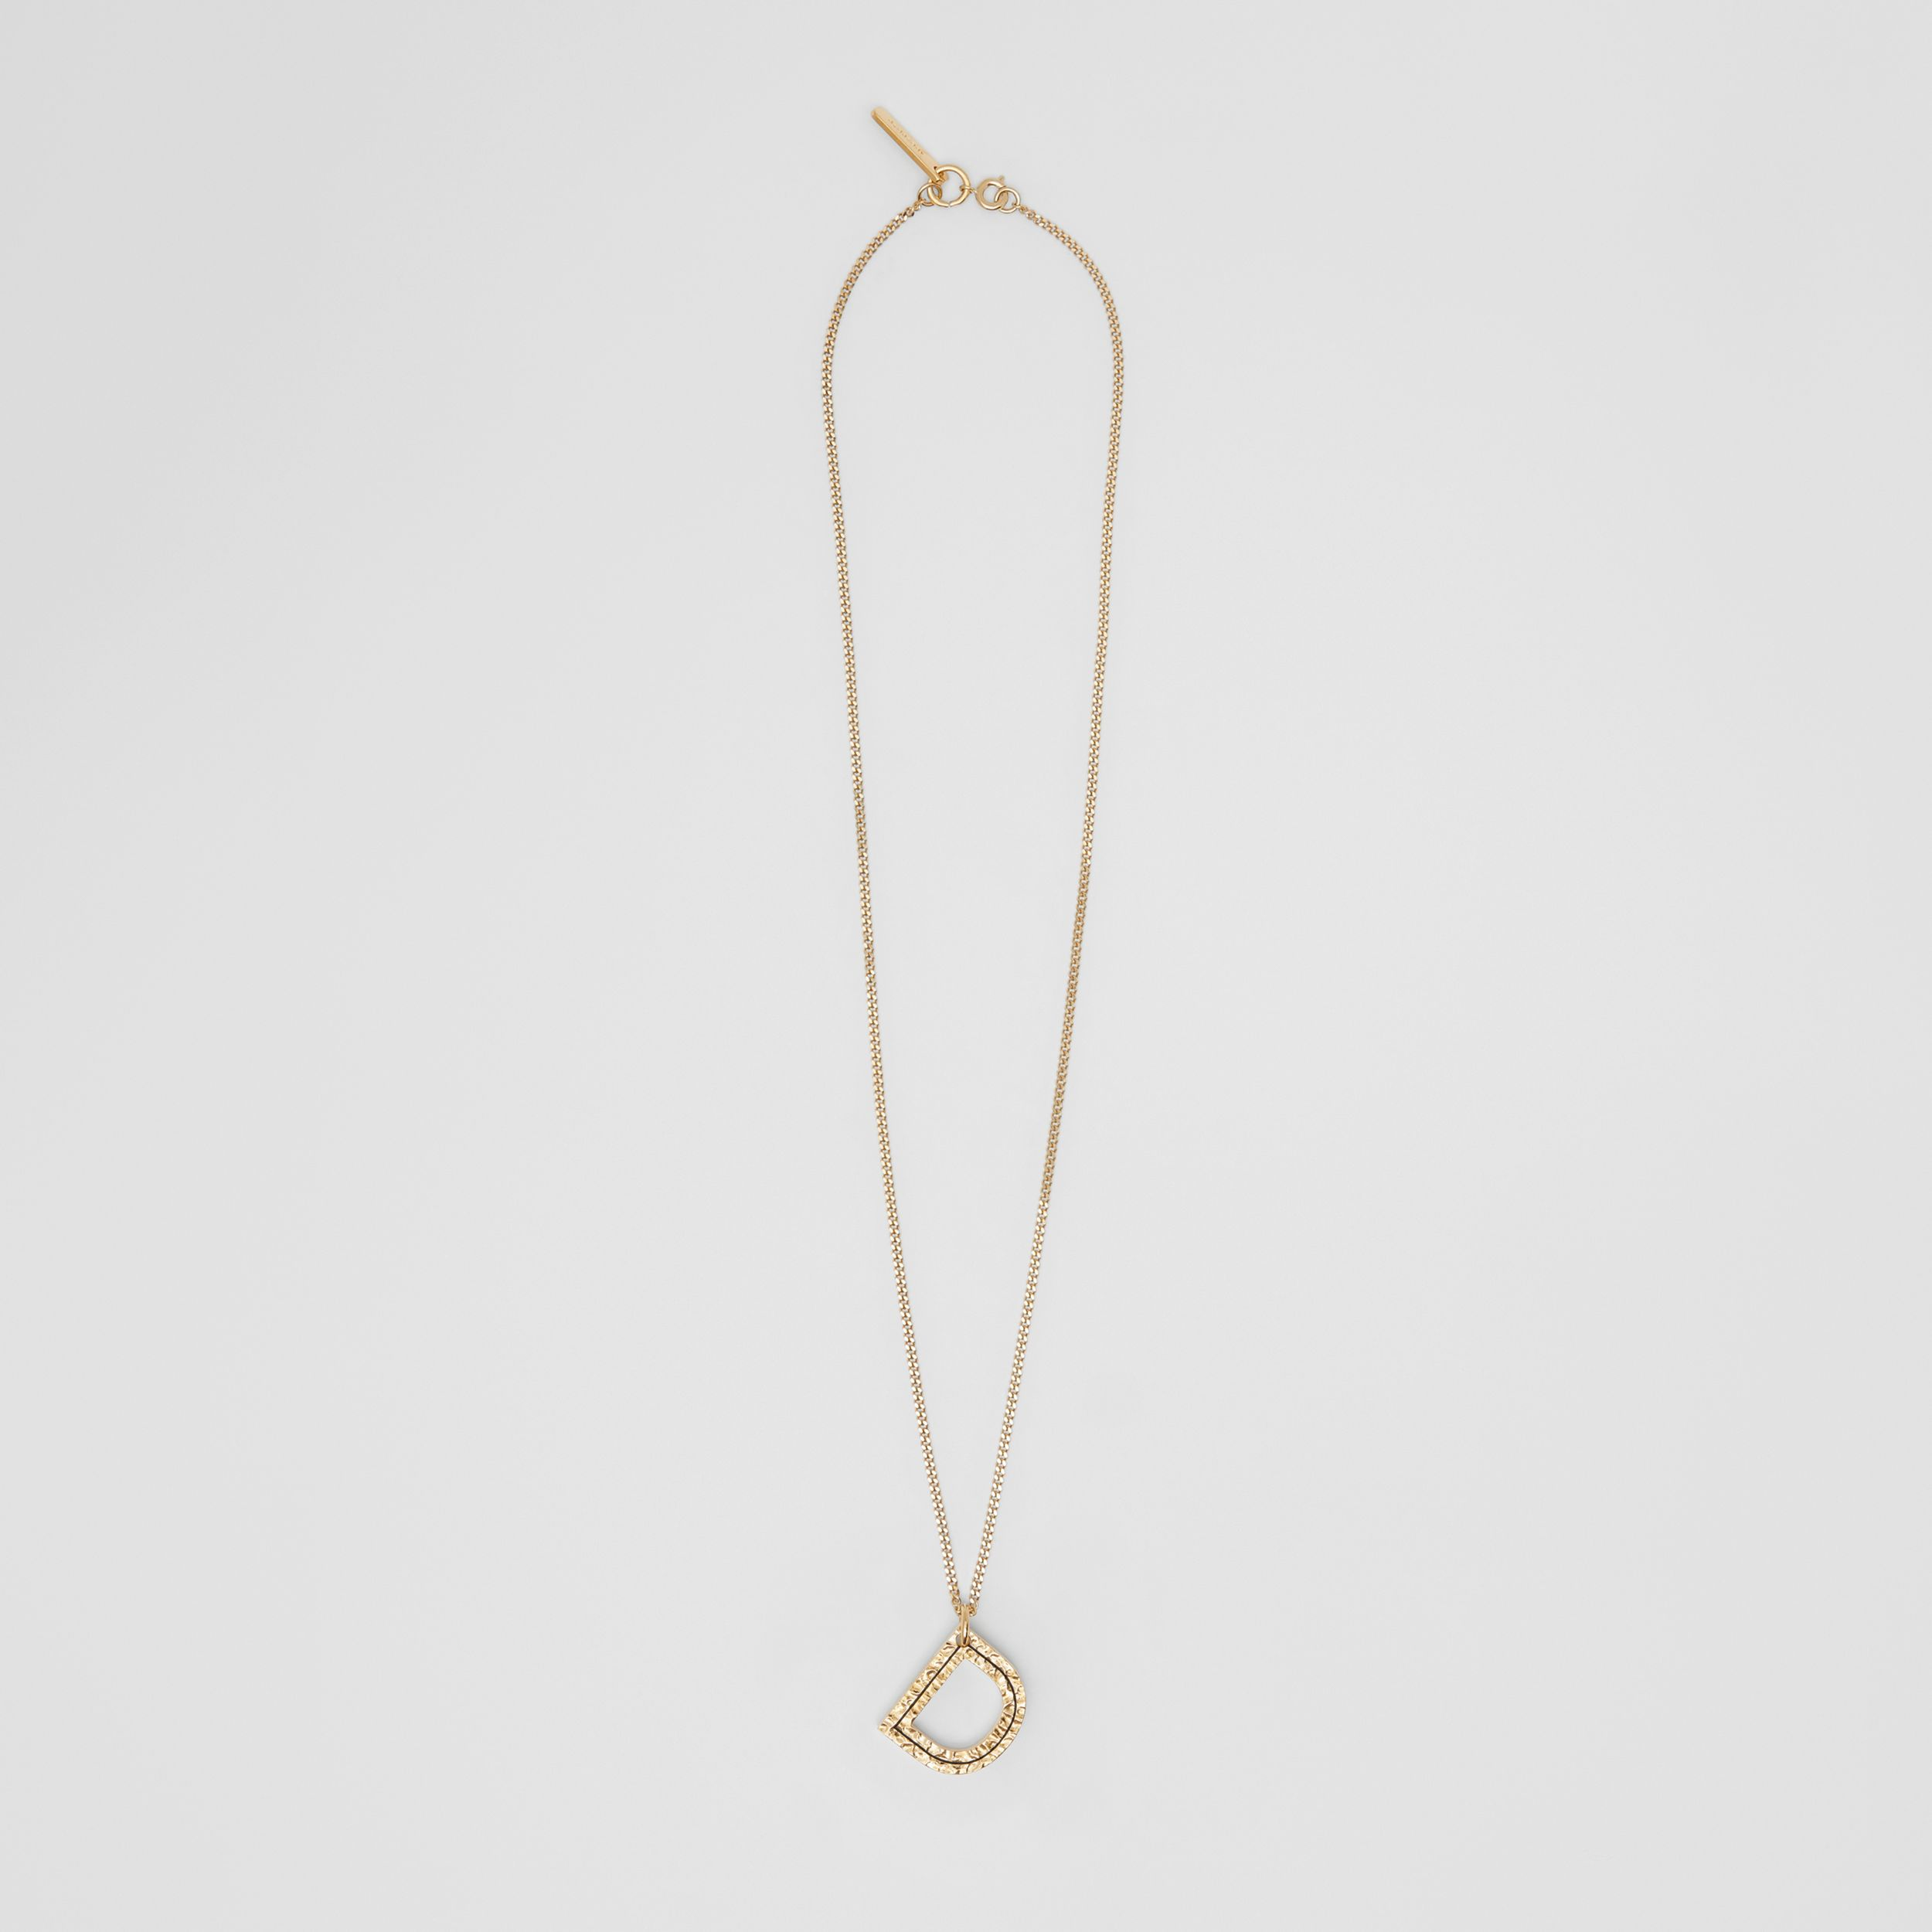 'D' Alphabet Charm Gold-plated Necklace in Light - Women | Burberry - 1